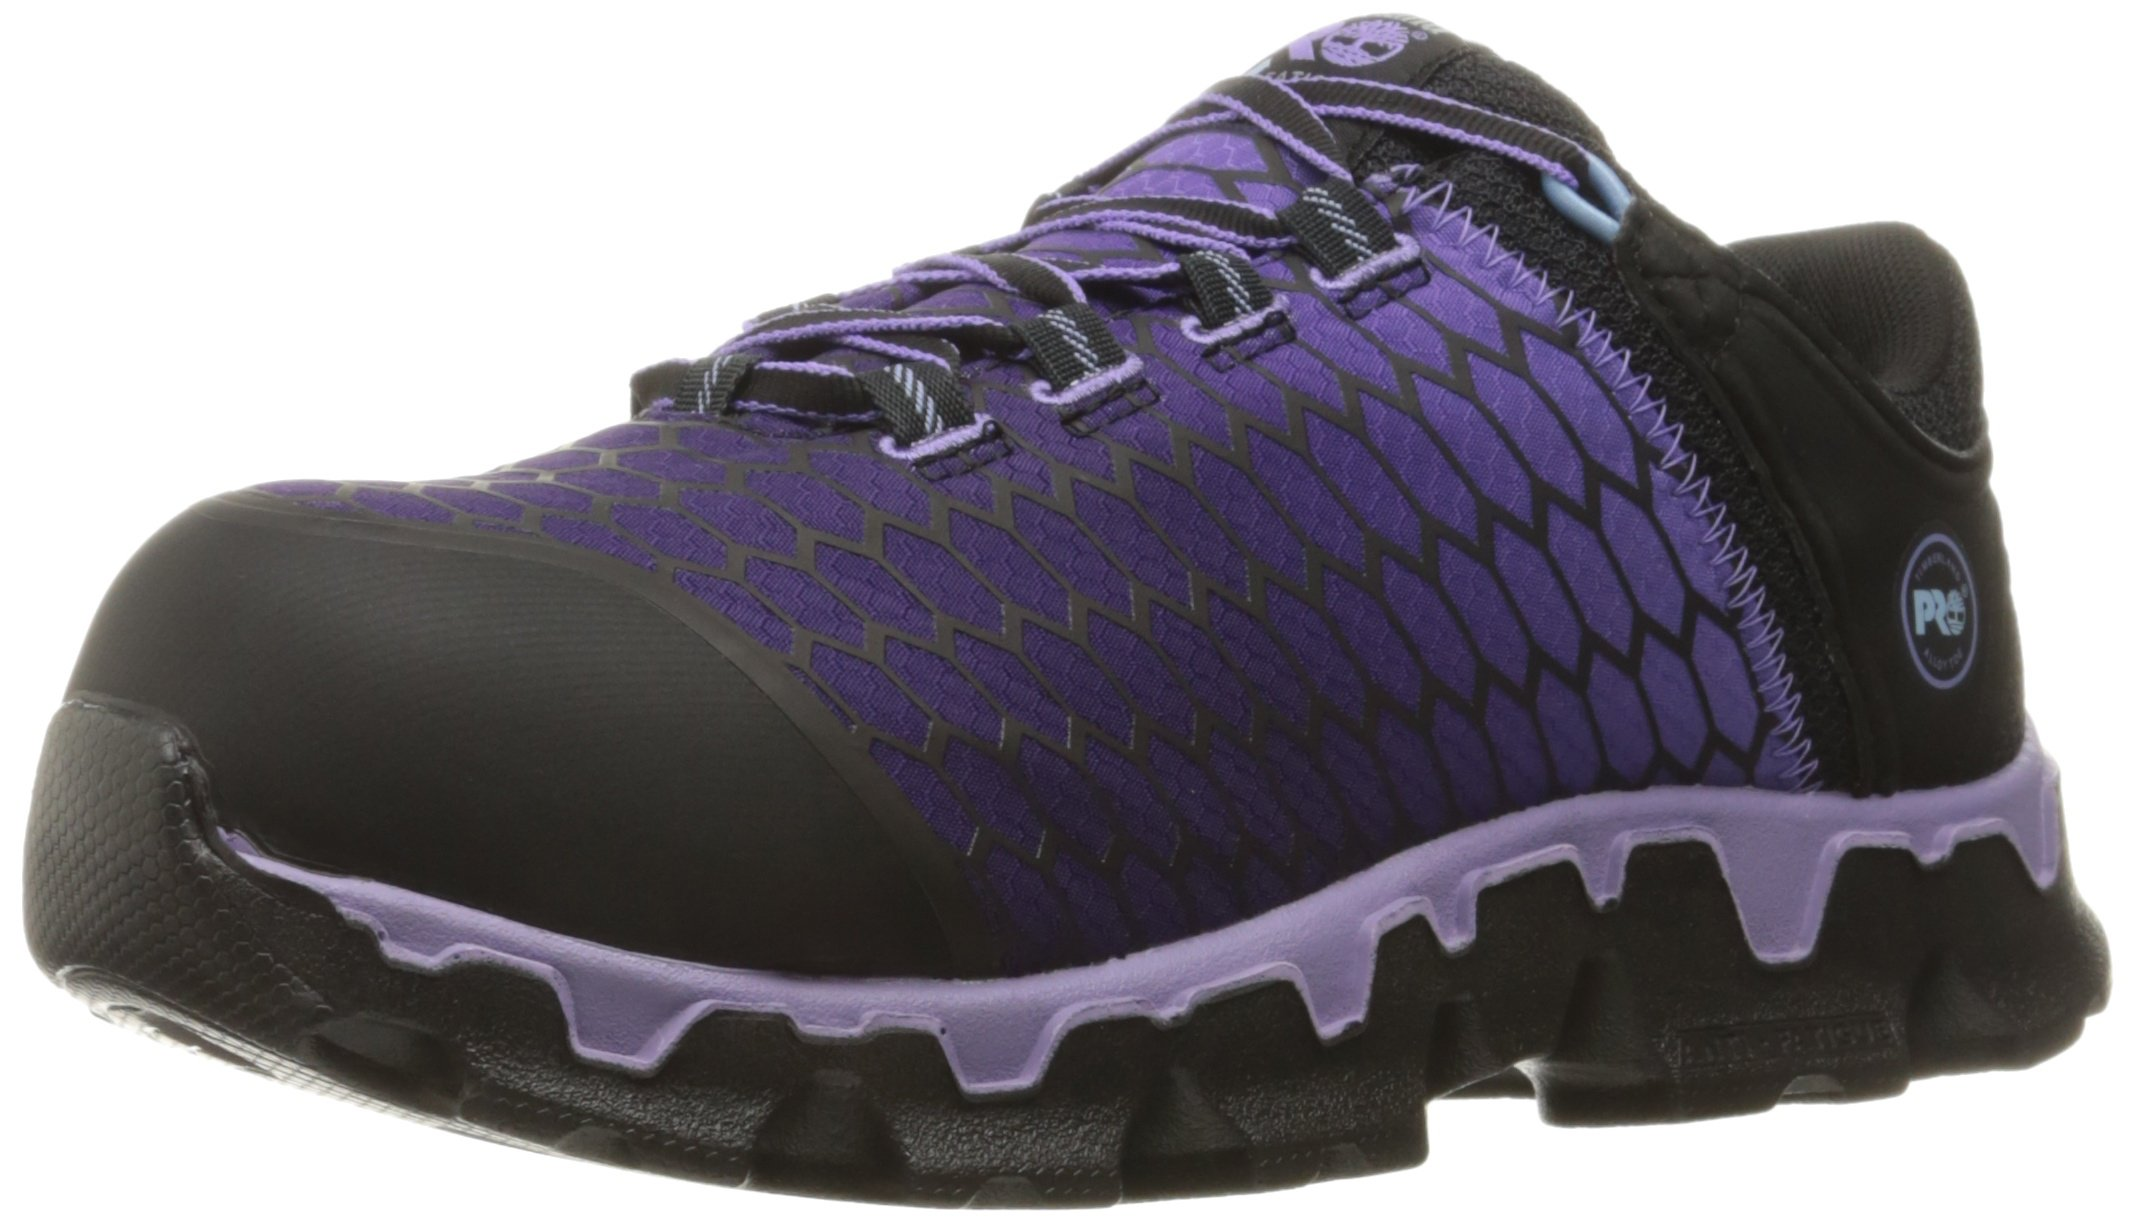 Timberland PRO Women's Powertrain Sport Alloy Toe SD+ Industrial and Construction Shoe, Black Synthetic/Lavender, 11 M US